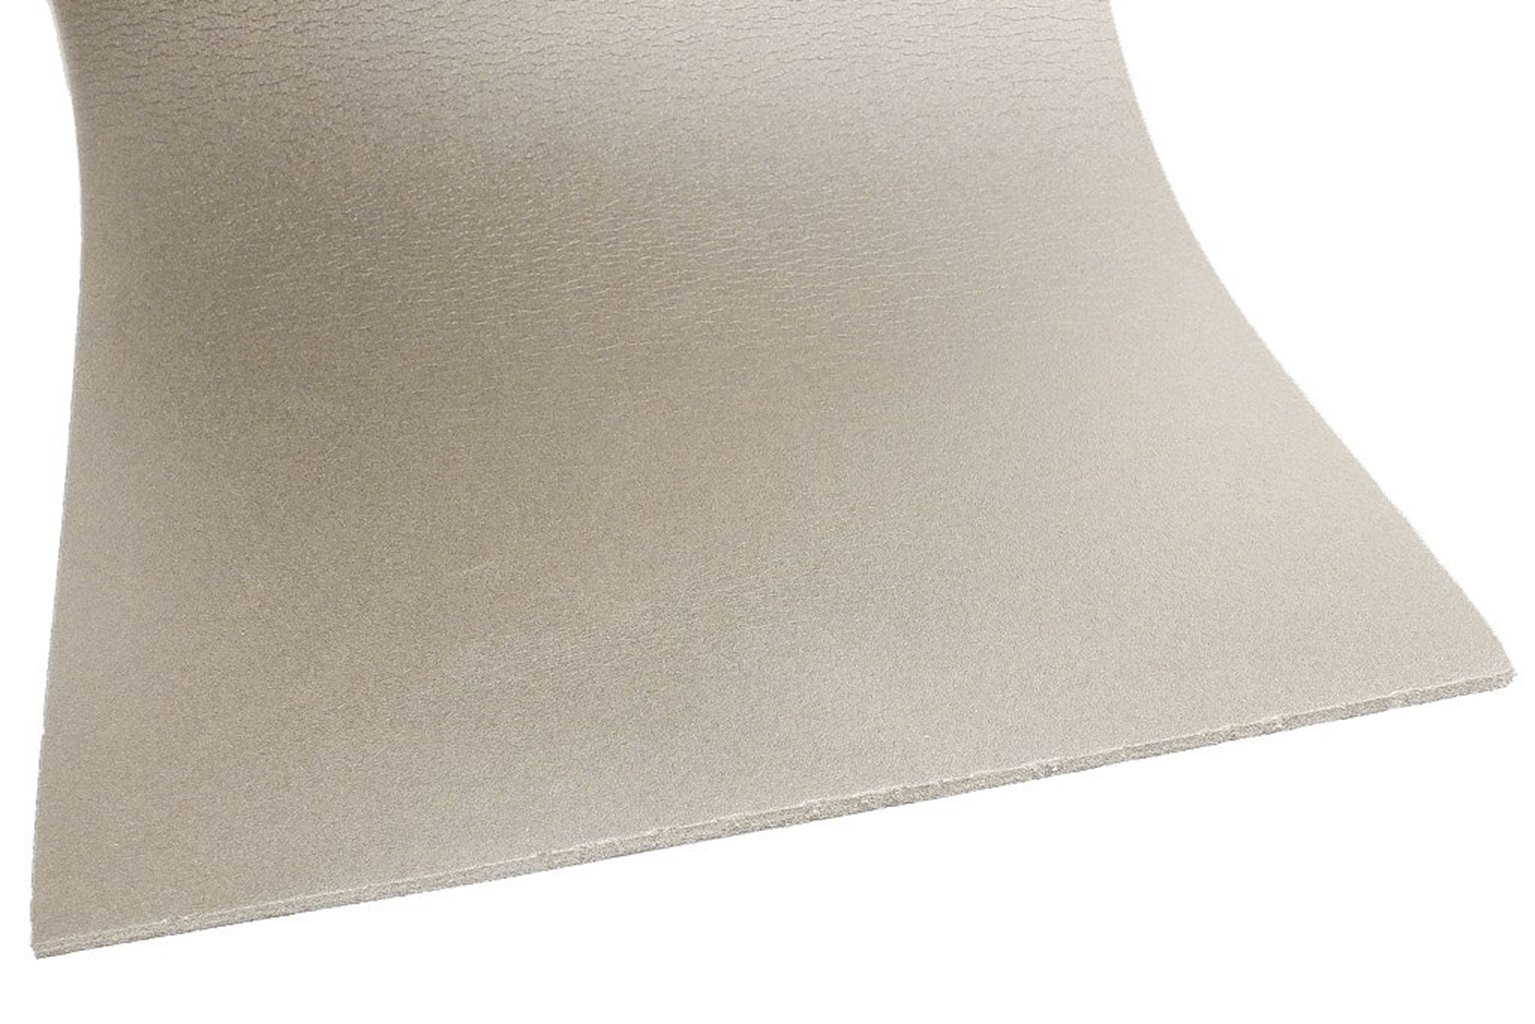 Trackbed Sheets  5mm (600 x 300mm)  (6 Pack)